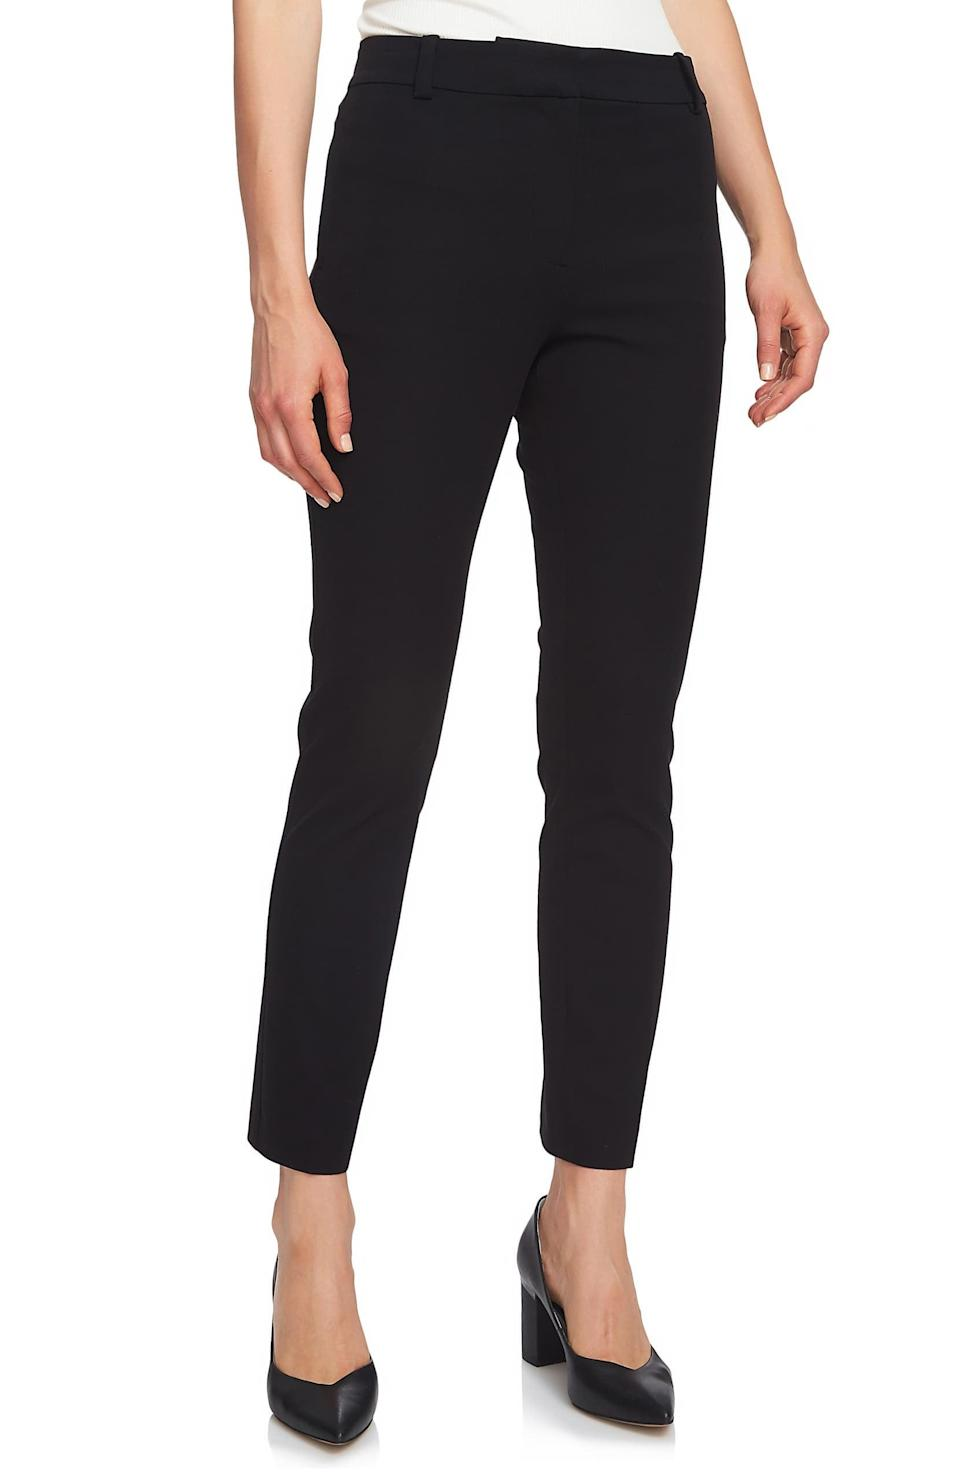 "<p>Remember when mom said you need a pair of good work ""slacks""? Well, you don't necessarily need that pleated, wide-leg pair she picked out, but she wasn't wrong. You do need a pair of slim, skinny <a href=""https://www.popsugar.com/buy/black-pants-551950?p_name=black%20pants&retailer=shop.nordstrom.com&pid=551950&price=79&evar1=fab%3Aus&evar9=34097656&evar98=https%3A%2F%2Fwww.popsugar.com%2Ffashion%2Fphoto-gallery%2F34097656%2Fimage%2F34097665%2FStaple-Trousers&list1=shopping%2Celizabeth%20and%20james%2Cstyle%20how%20to&prop13=mobile&pdata=1"" class=""link rapid-noclick-resp"" rel=""nofollow noopener"" target=""_blank"" data-ylk=""slk:black pants"">black pants</a> ($79) as an alternative to jeans. You can wear them with your blazer as an alternative to a suit, add them to a silky blouse for cocktails, or dress them with a button-down for something pulled together. They're a piece you'll rely on season after season, year after year, so make sure you pick a pair that really fits you.</p>"